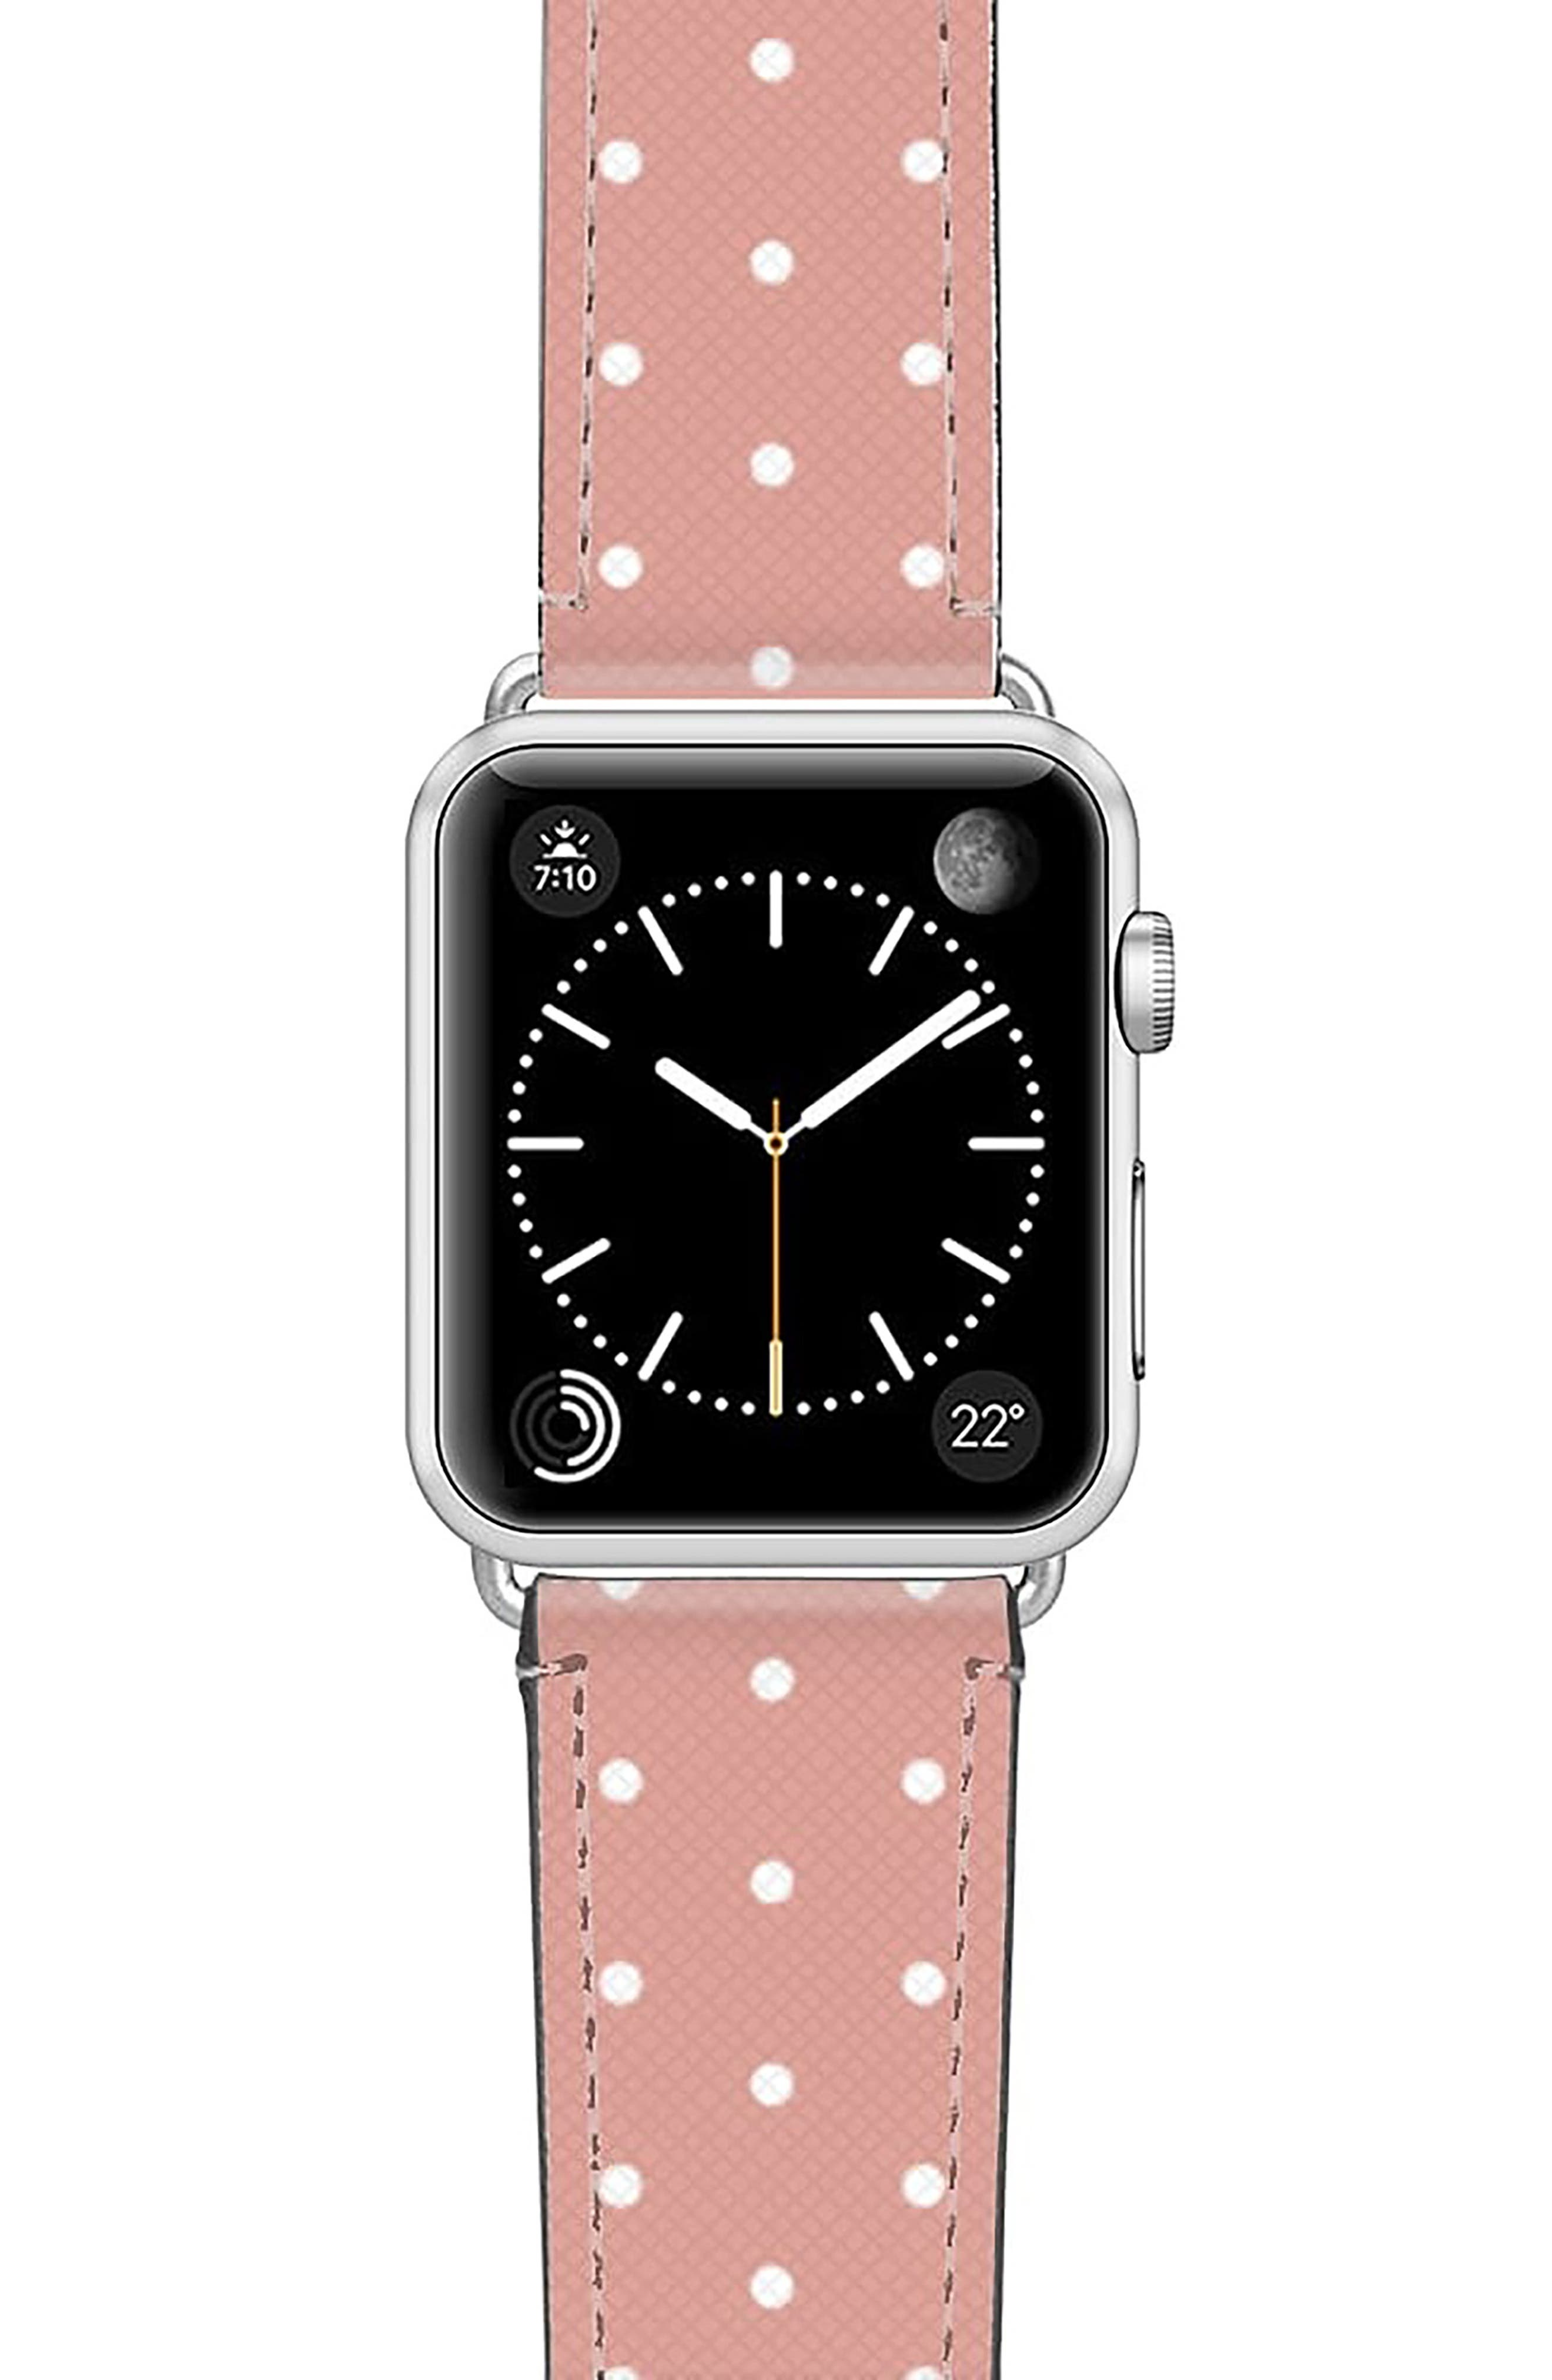 Polka Dots Saffiano Faux Leather Apple Watch Strap